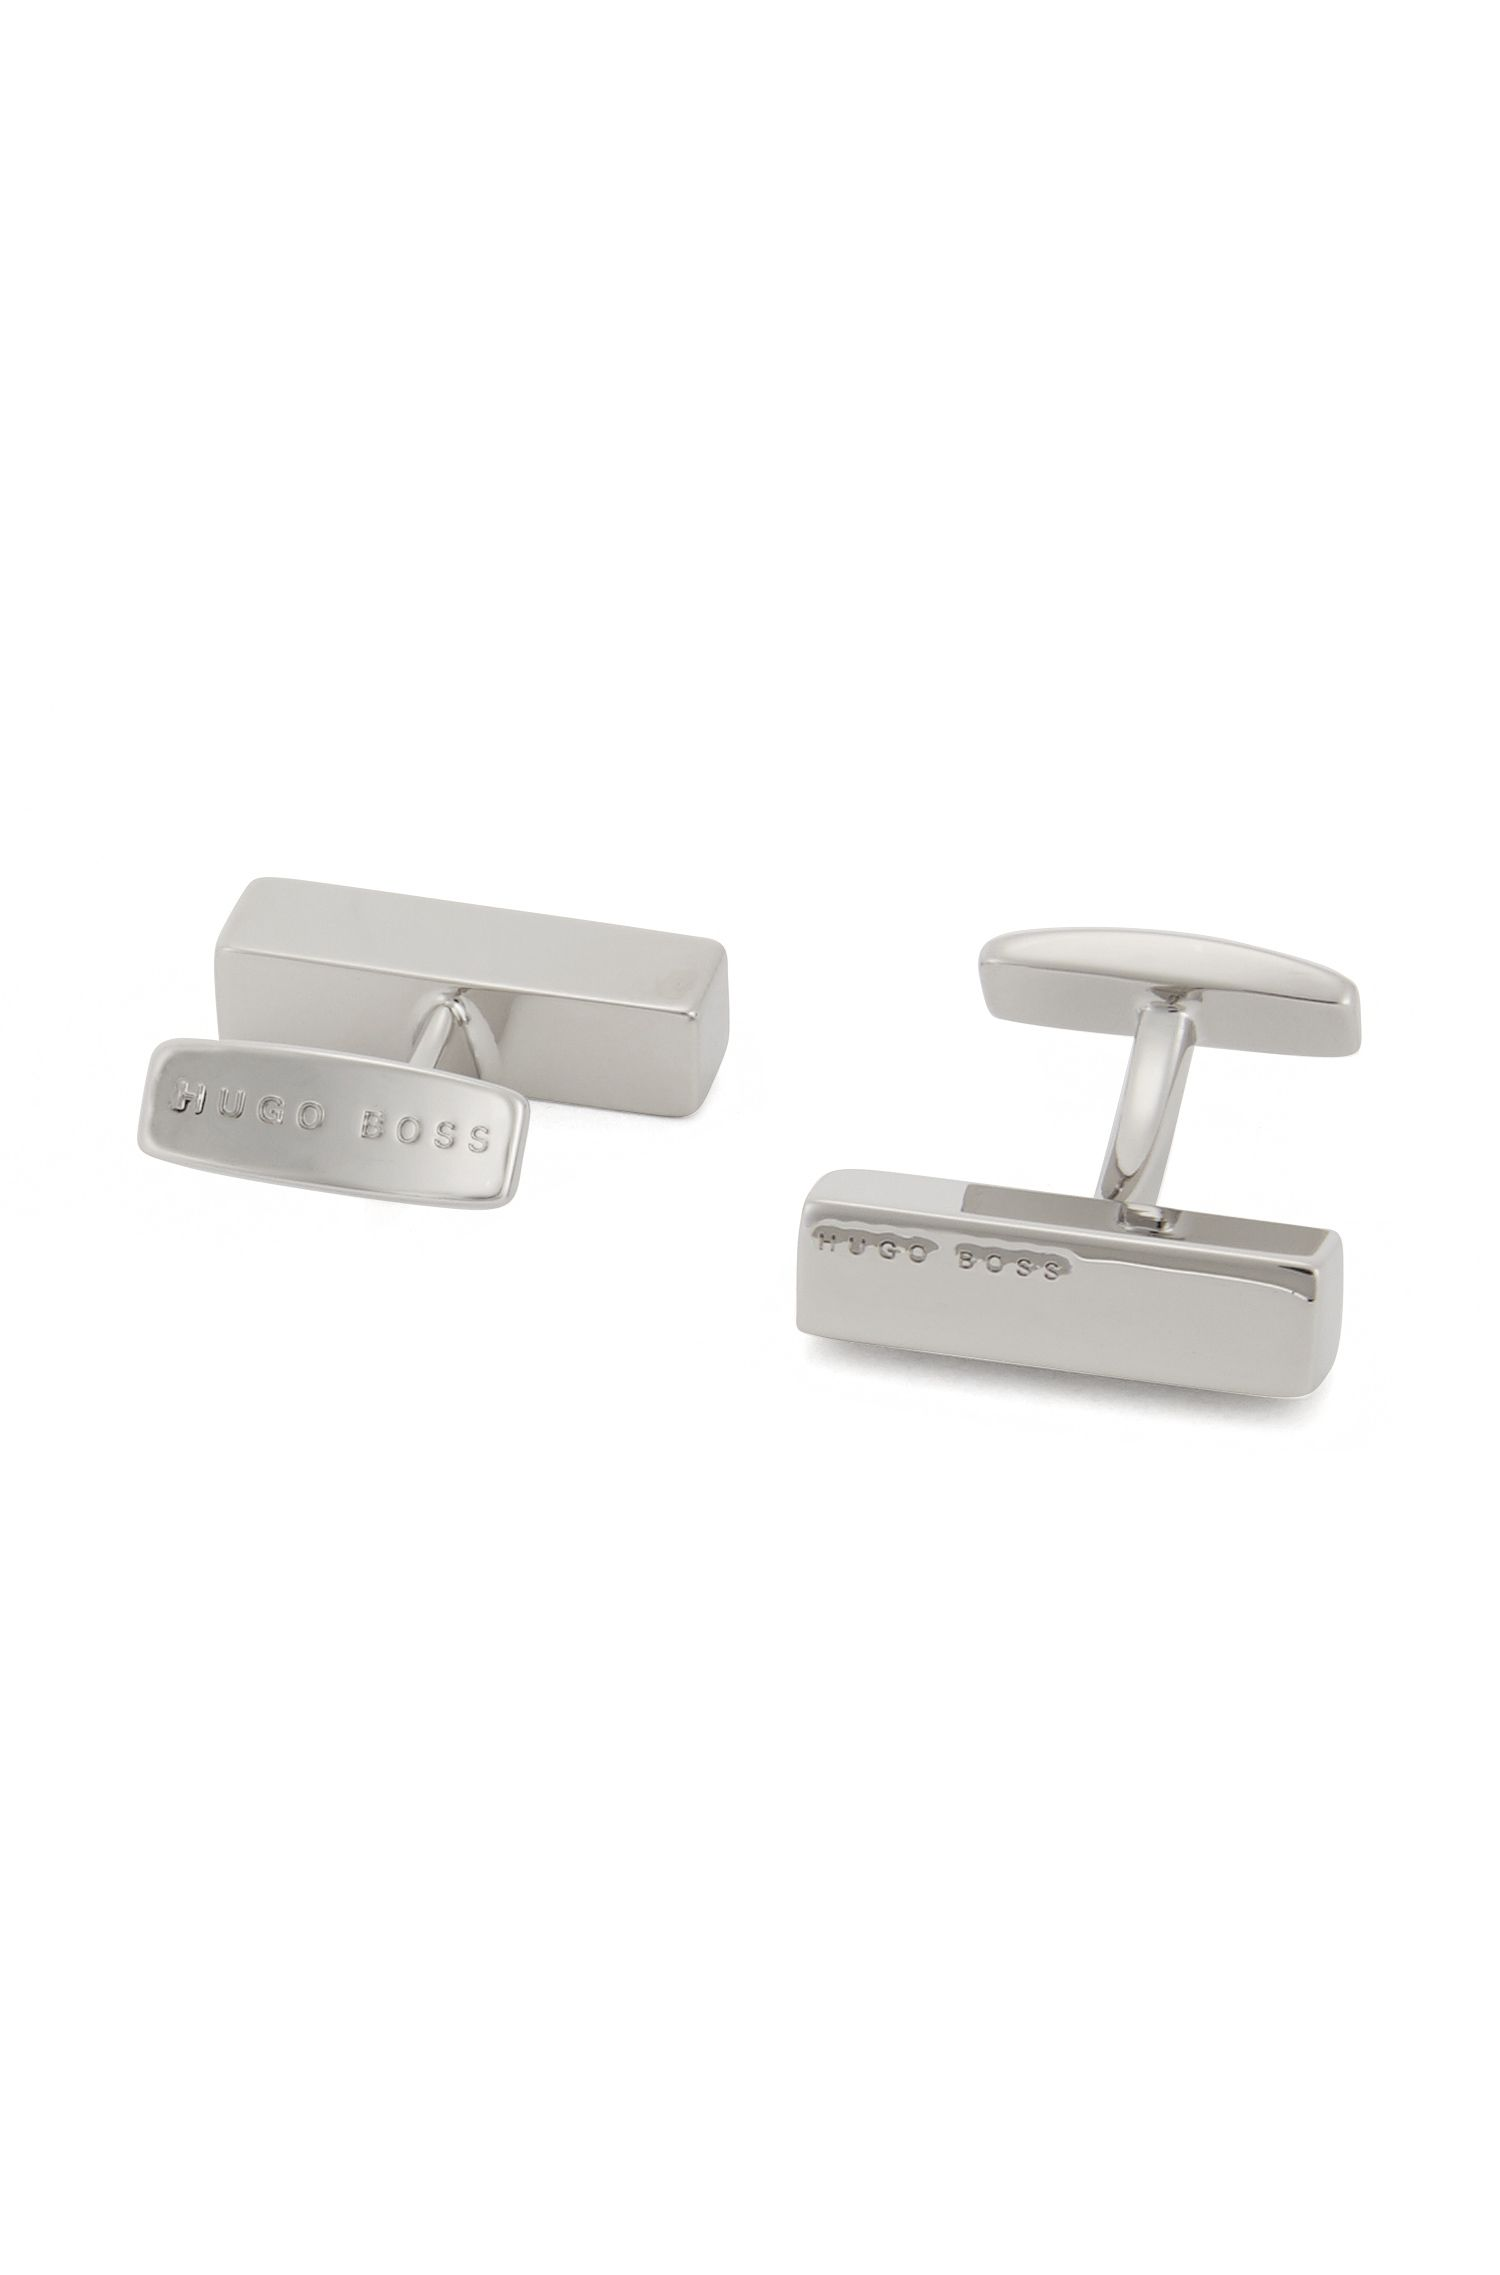 Brass tie clip and cufflinks gift set